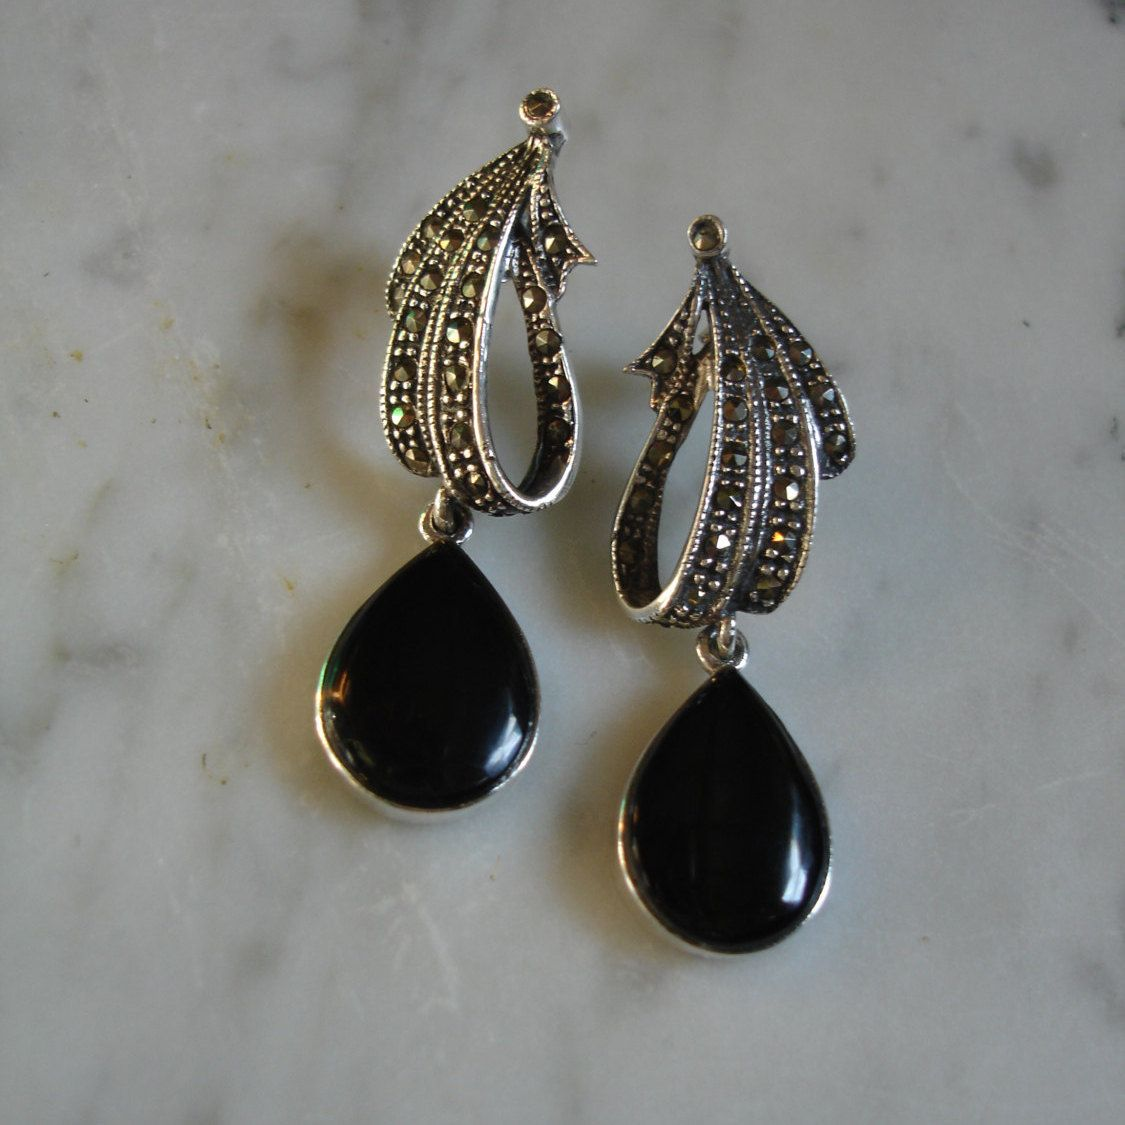 Marcasite Earrings Black Onyx Post Vintage 925 Drop Ribbon By 23littlewishes On Etsy